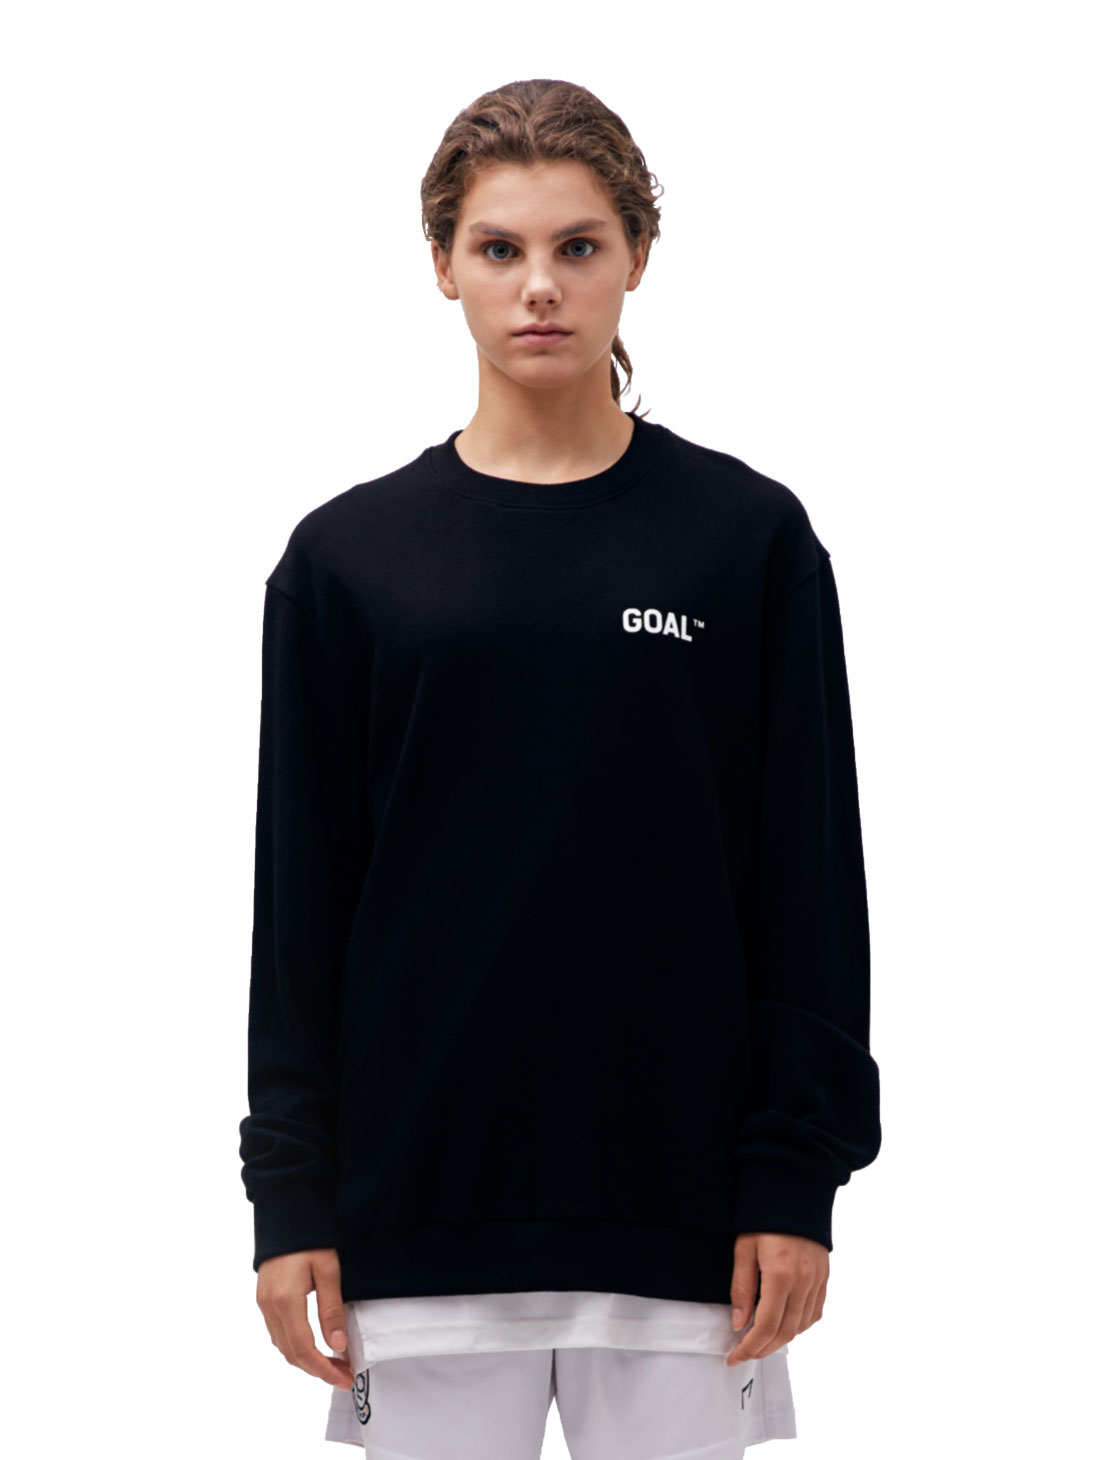 BACK LOGO SWEATSHIRT - BLACK